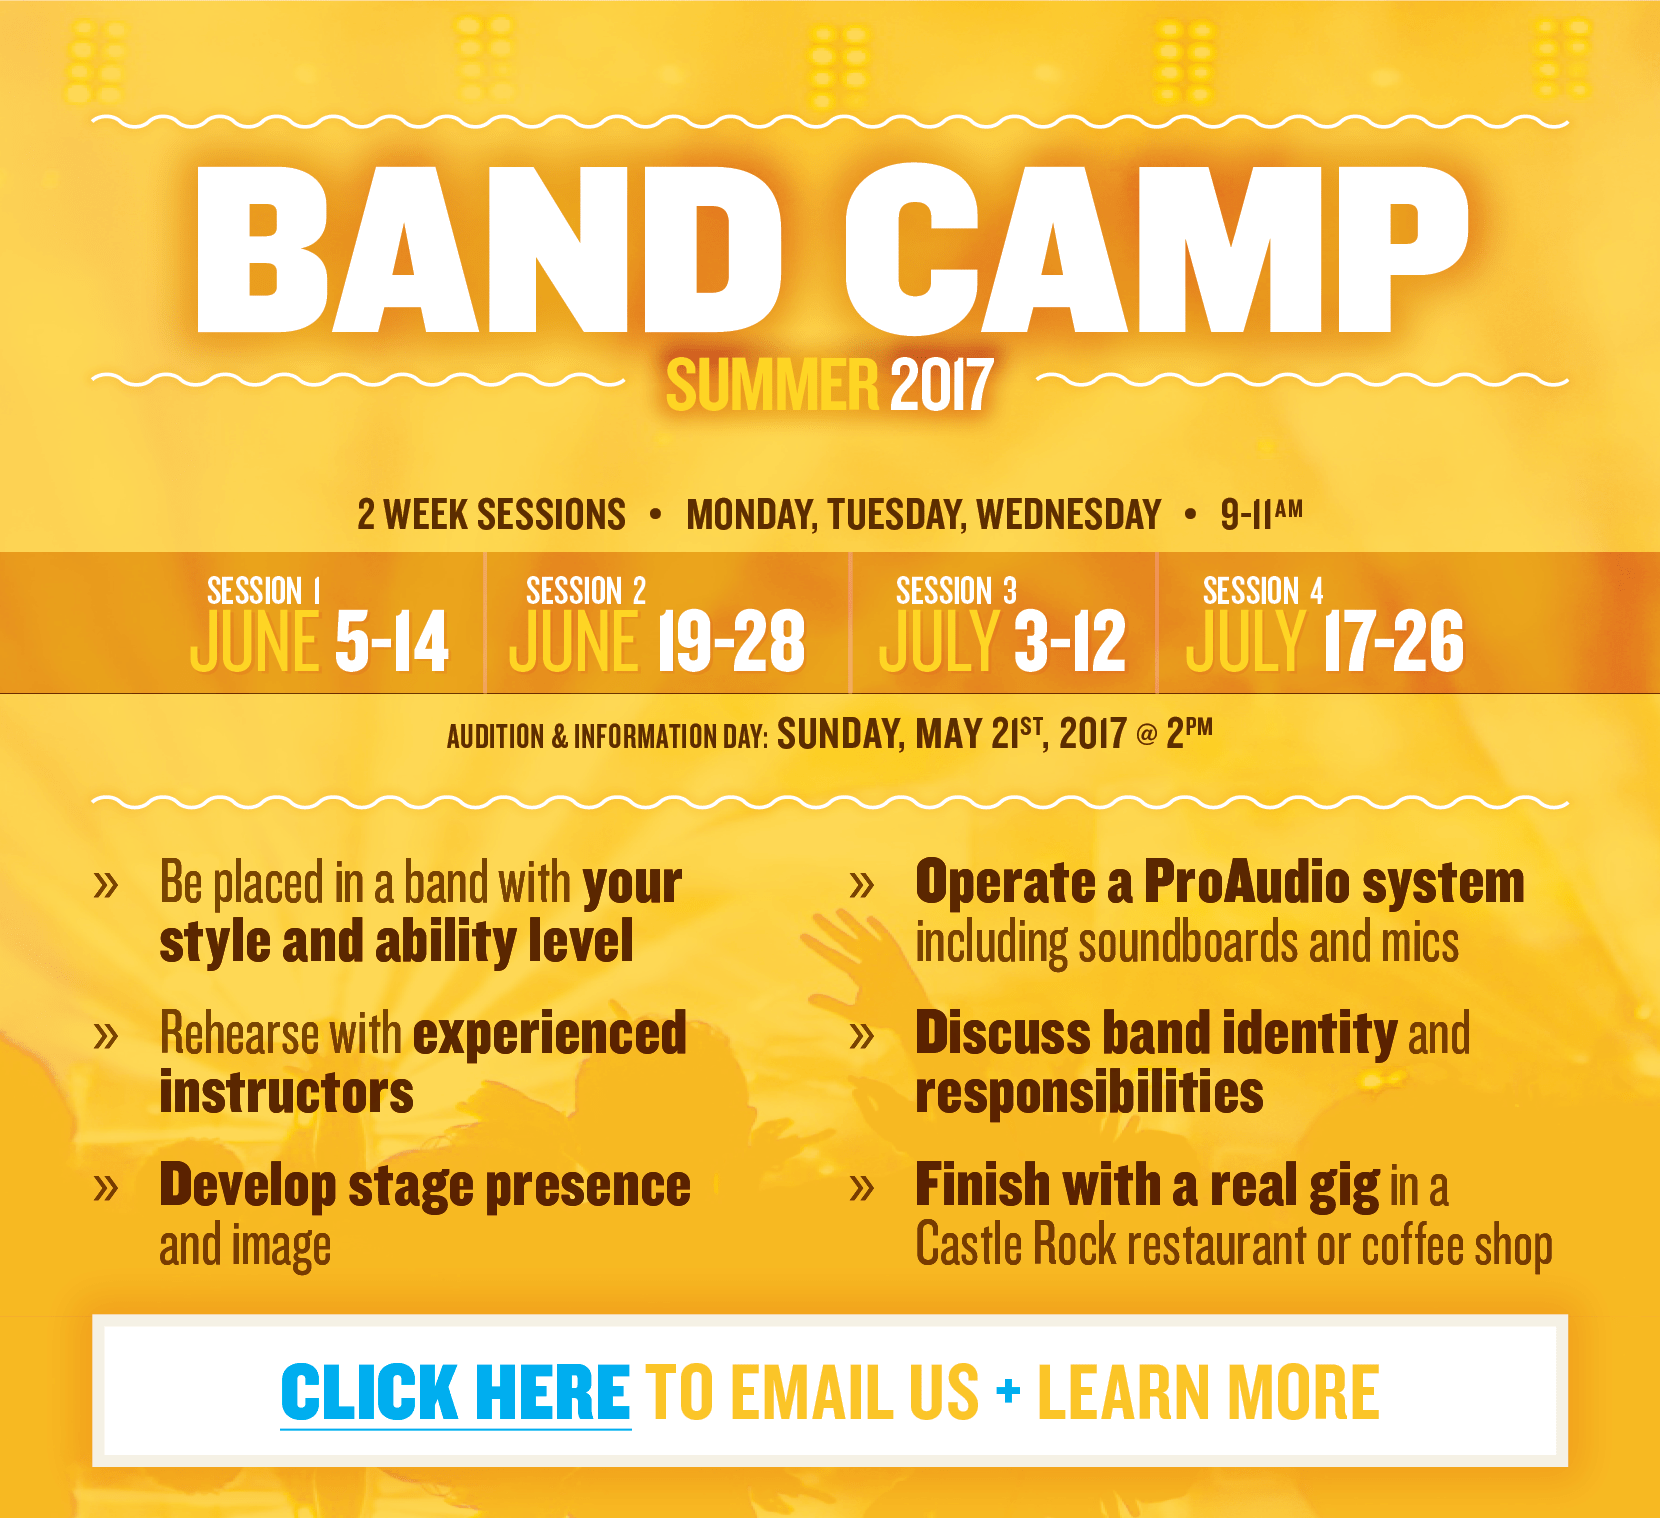 Band Camp (Summer 2017)  |  2 Week Sessions  |  Monday, Wednesday, Friday  |  9-11am - Audition & Information Day: Sunday, May 21st, 2017 @ 2pm